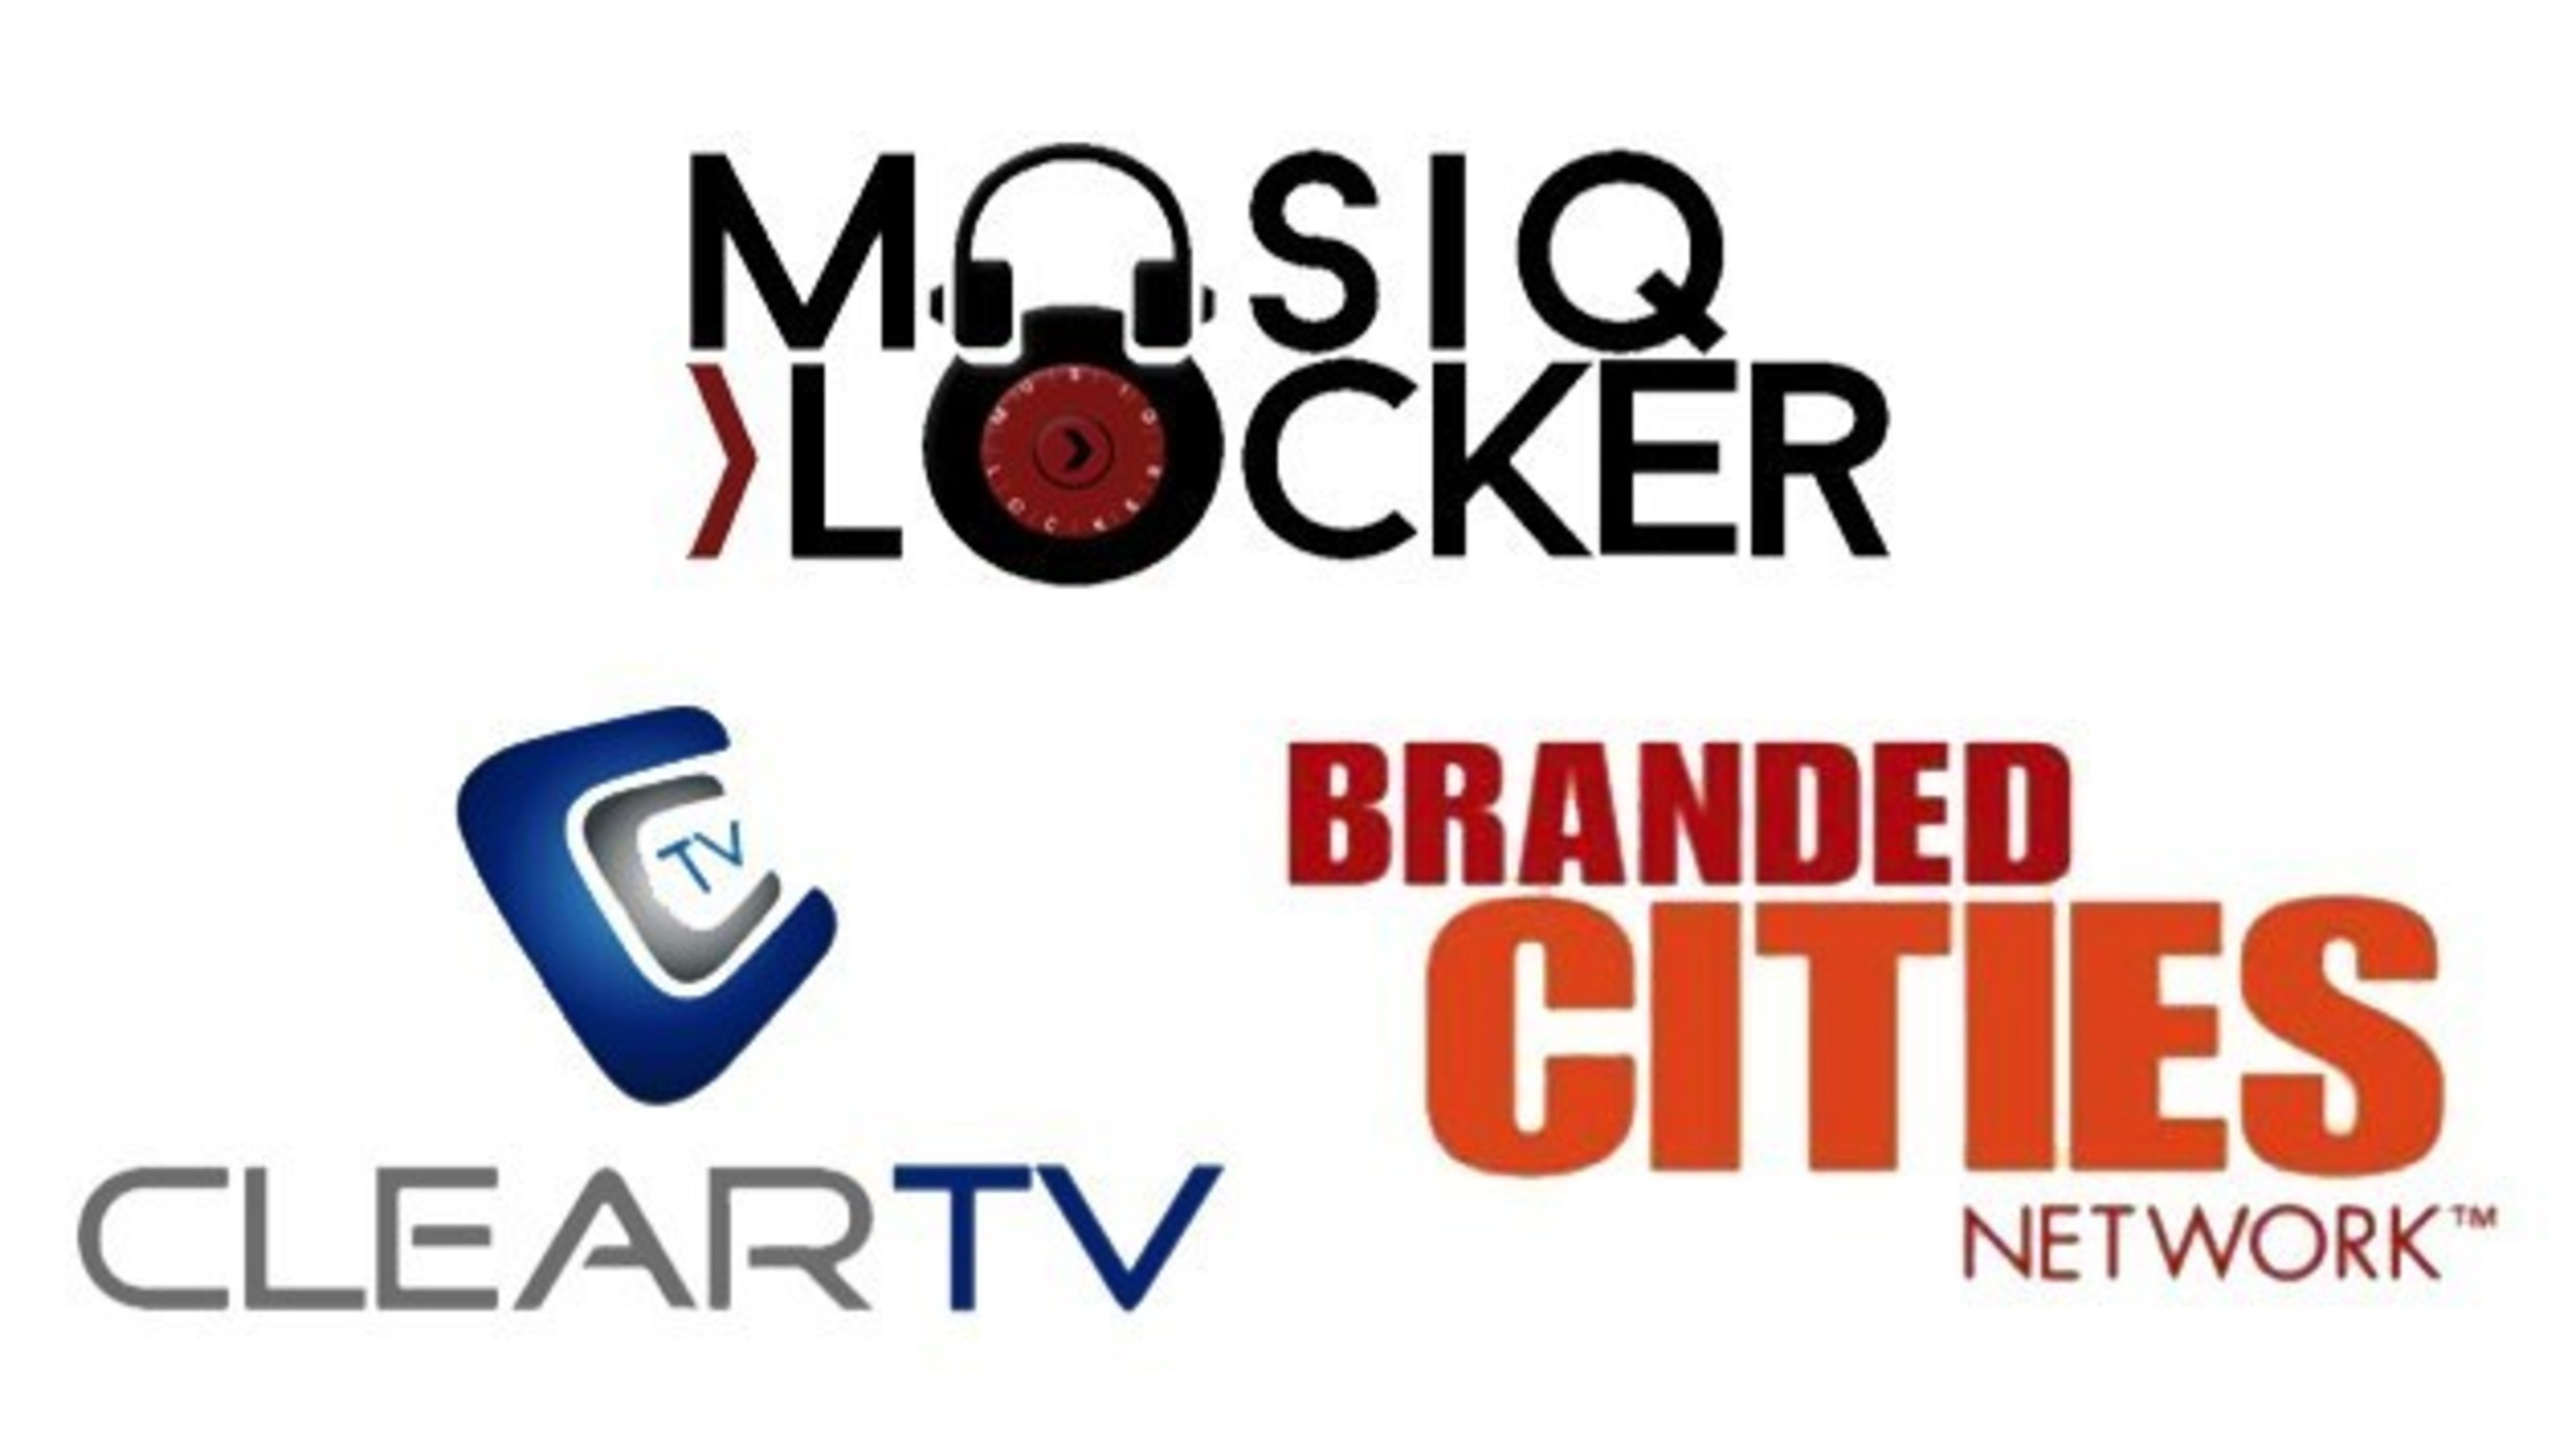 ClearTV Media and Branded Cities partner with Royce Clayton's Musiq Locker to bring sports and